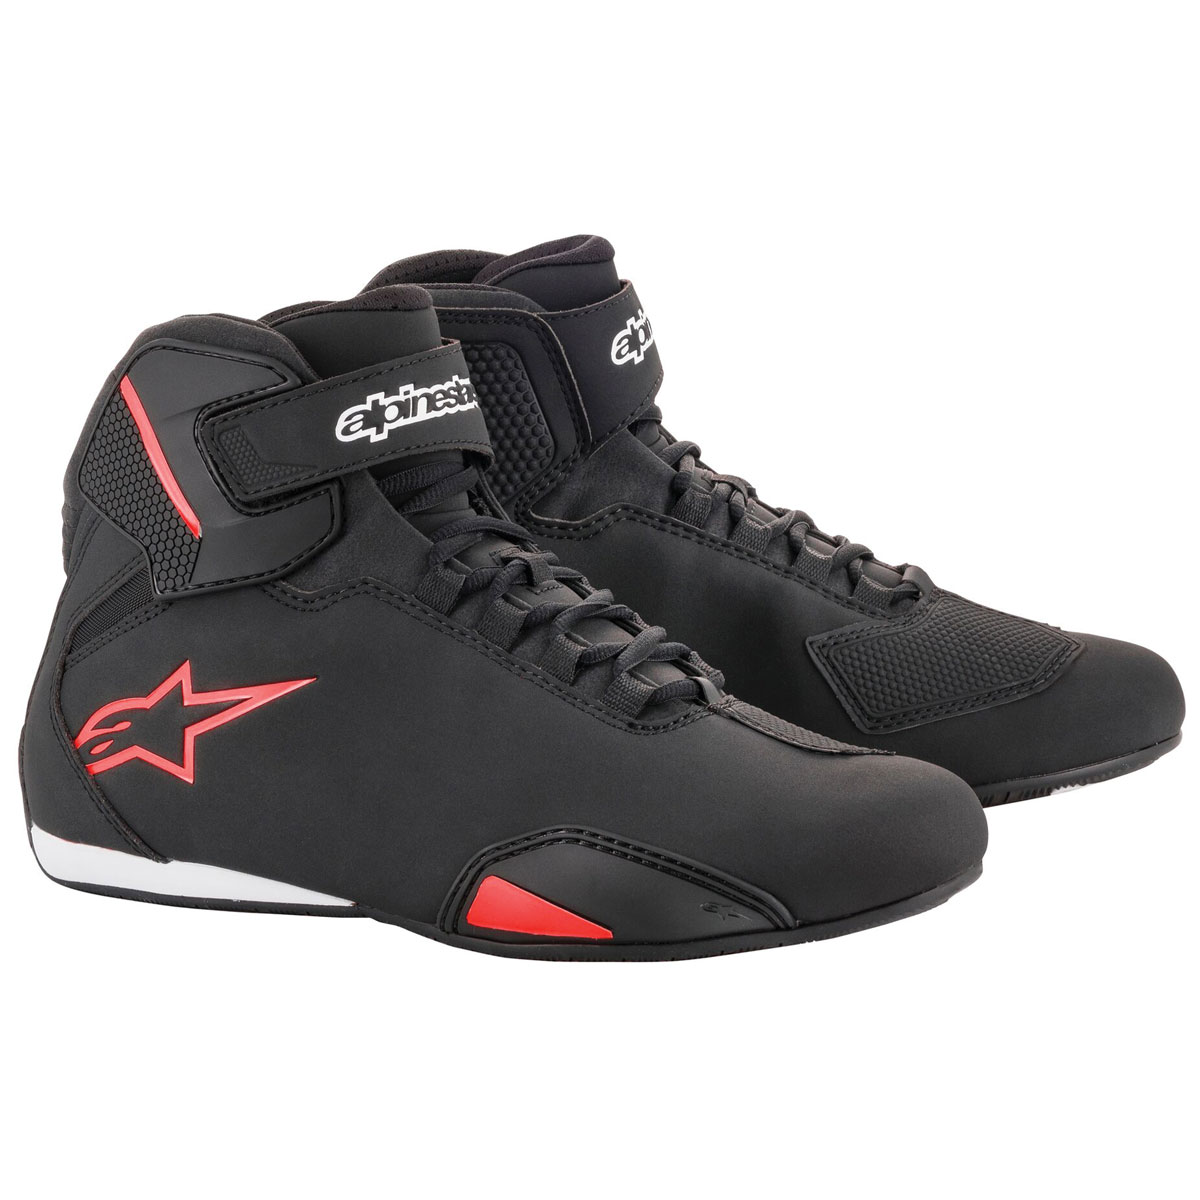 Alpinestars Men's Sektor Black/Red Riding Shoes